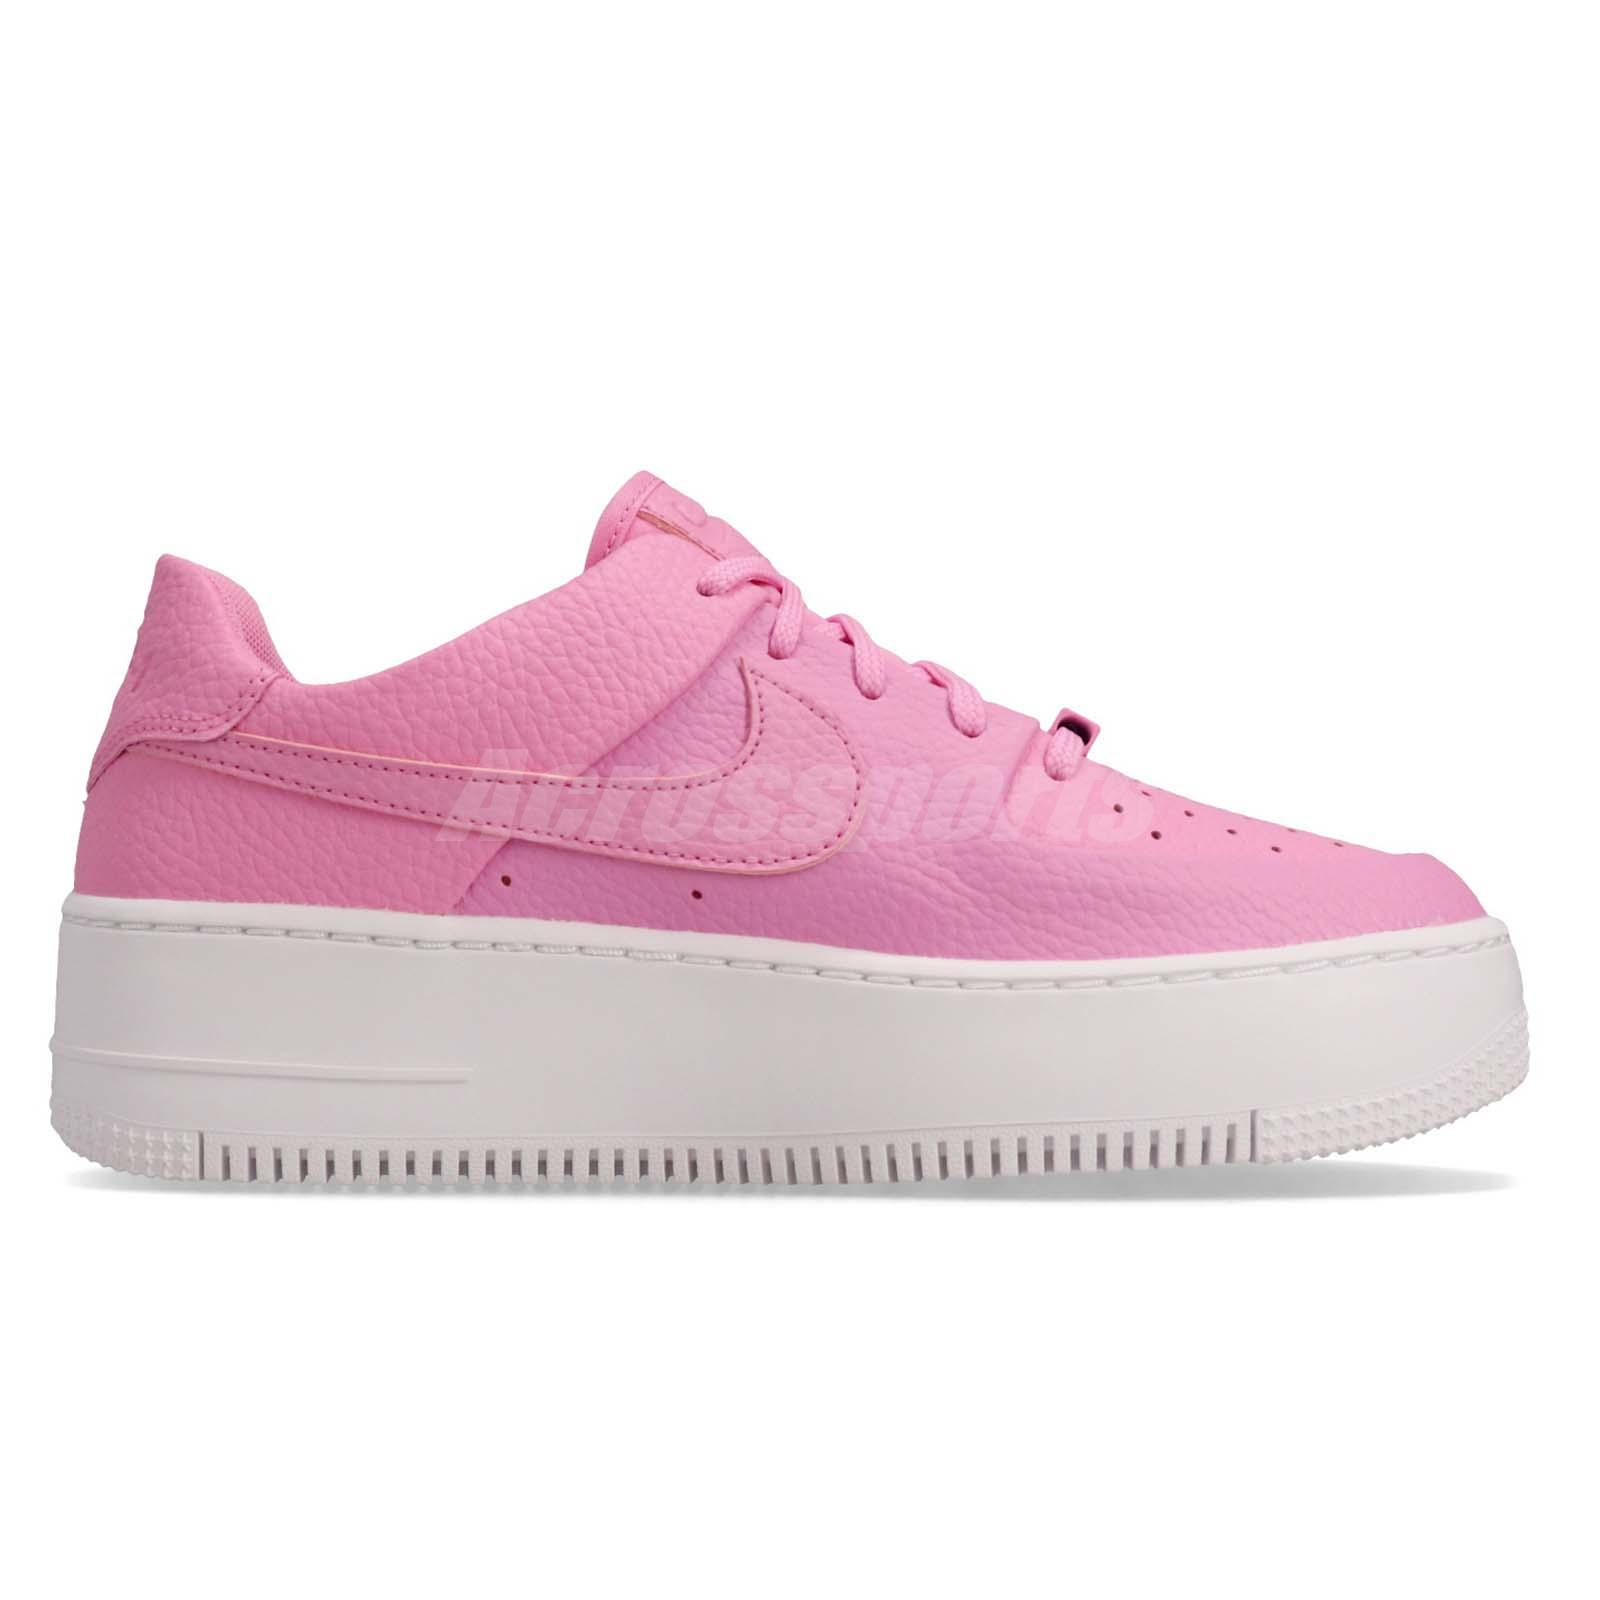 Details about Nike Wmns AF1 Sage Low Air Force 1 Psychic Pink Women Platform Shoes AR5339 601